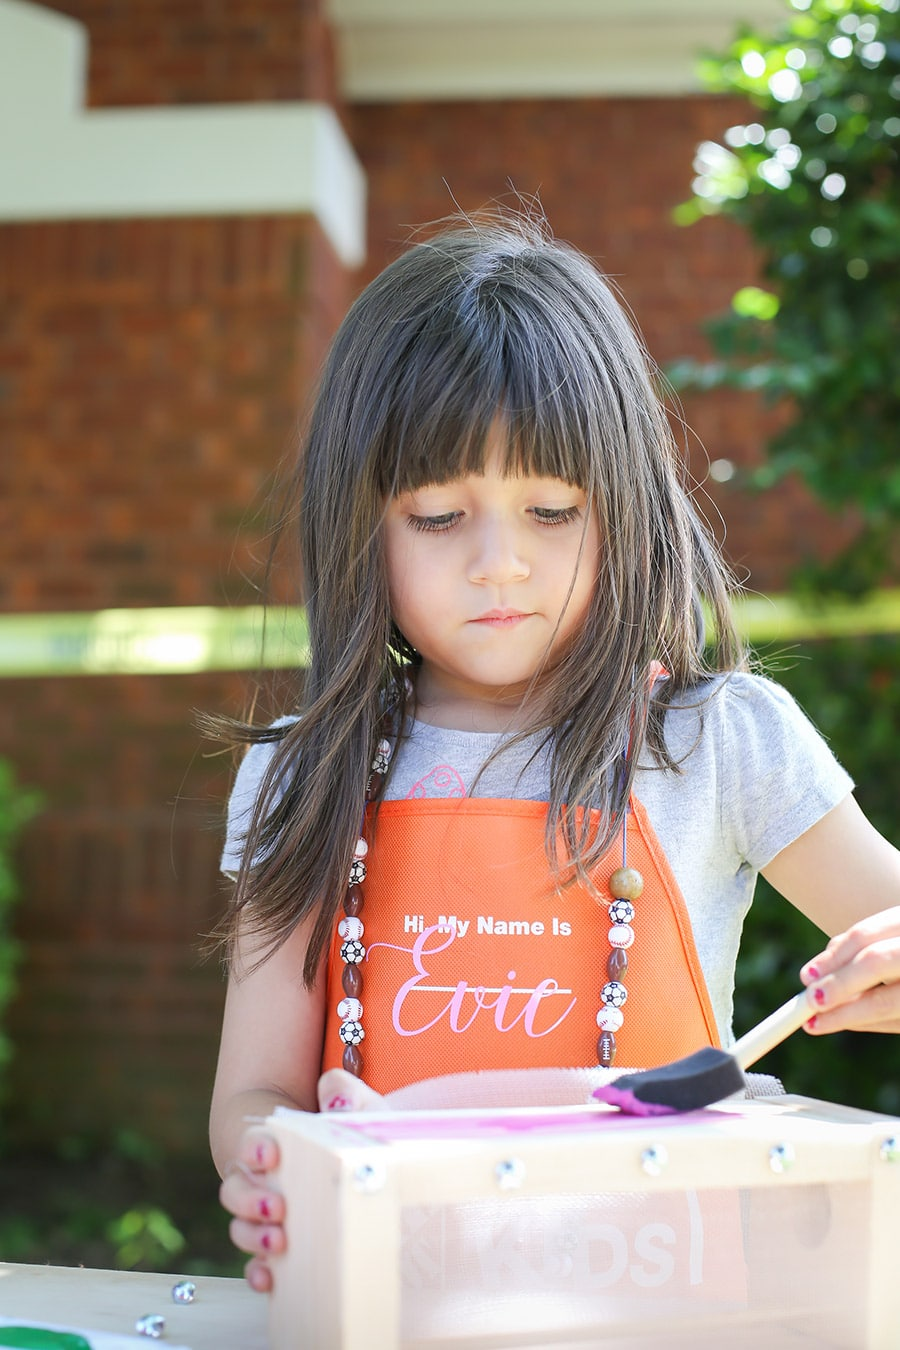 Host a fun kids party with Home Depot workshop building kits!